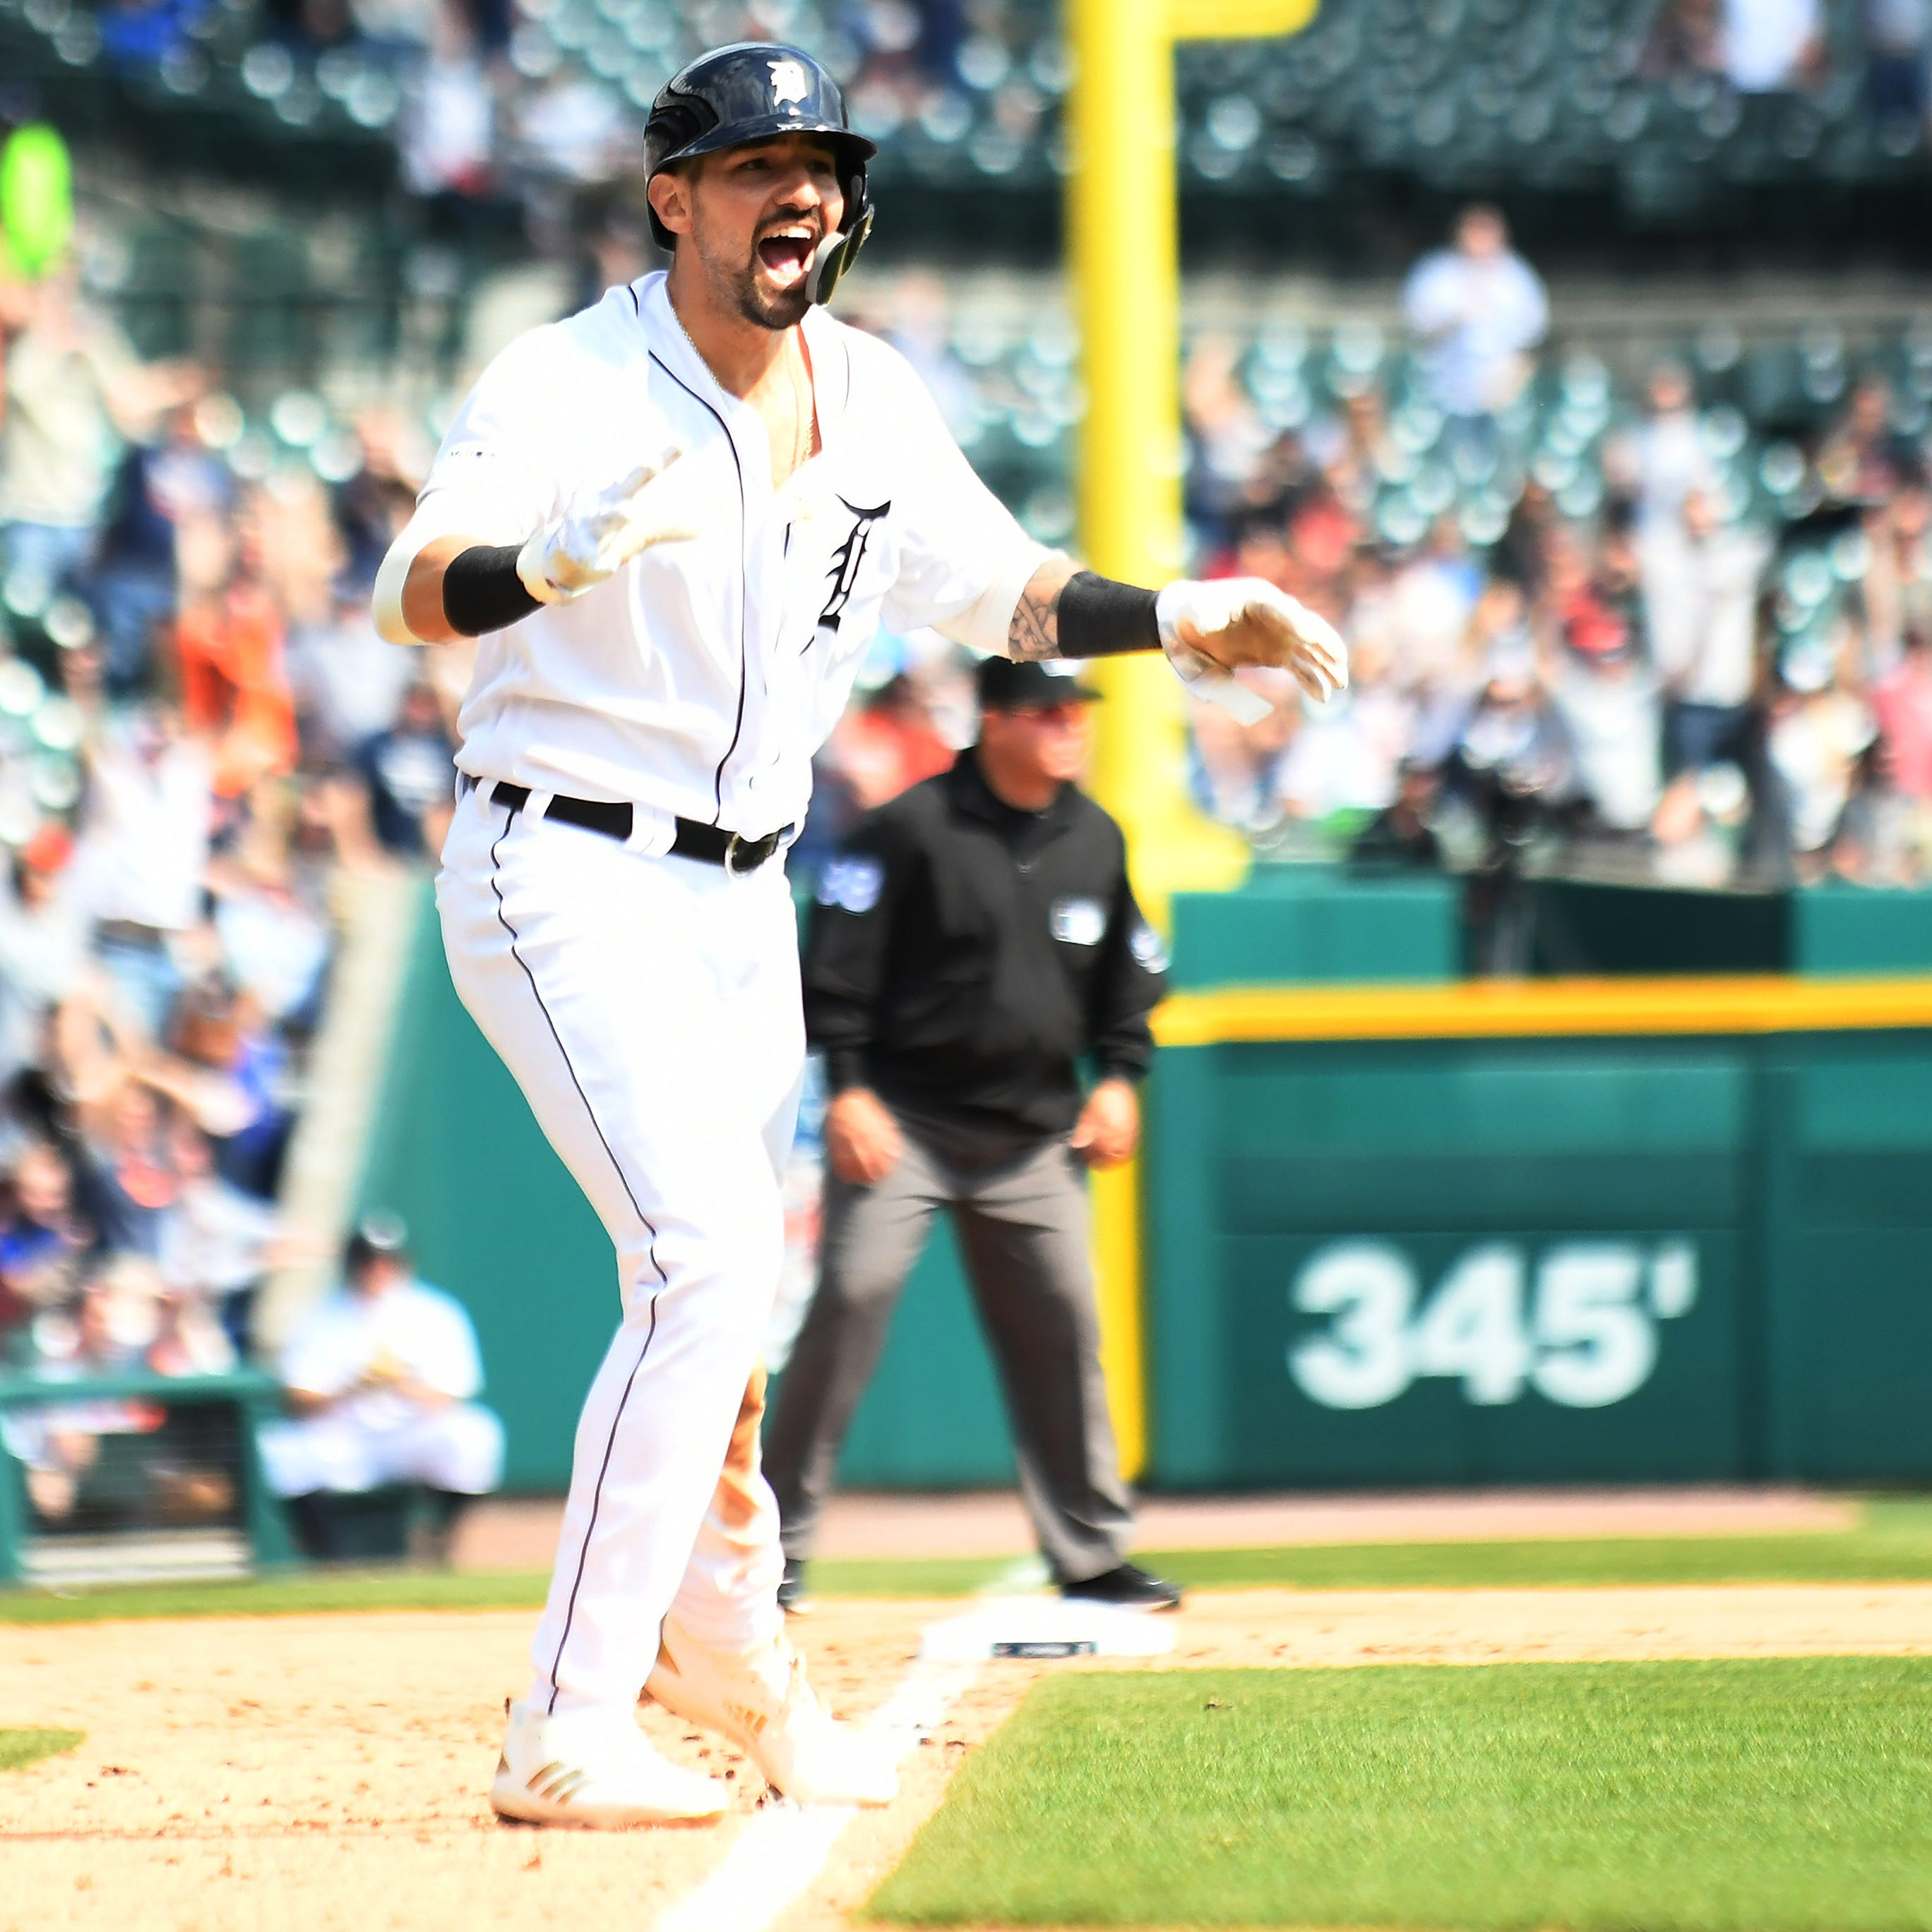 Tigers' Nick Castellanos on agent change: 'Just a business decision I had to make'